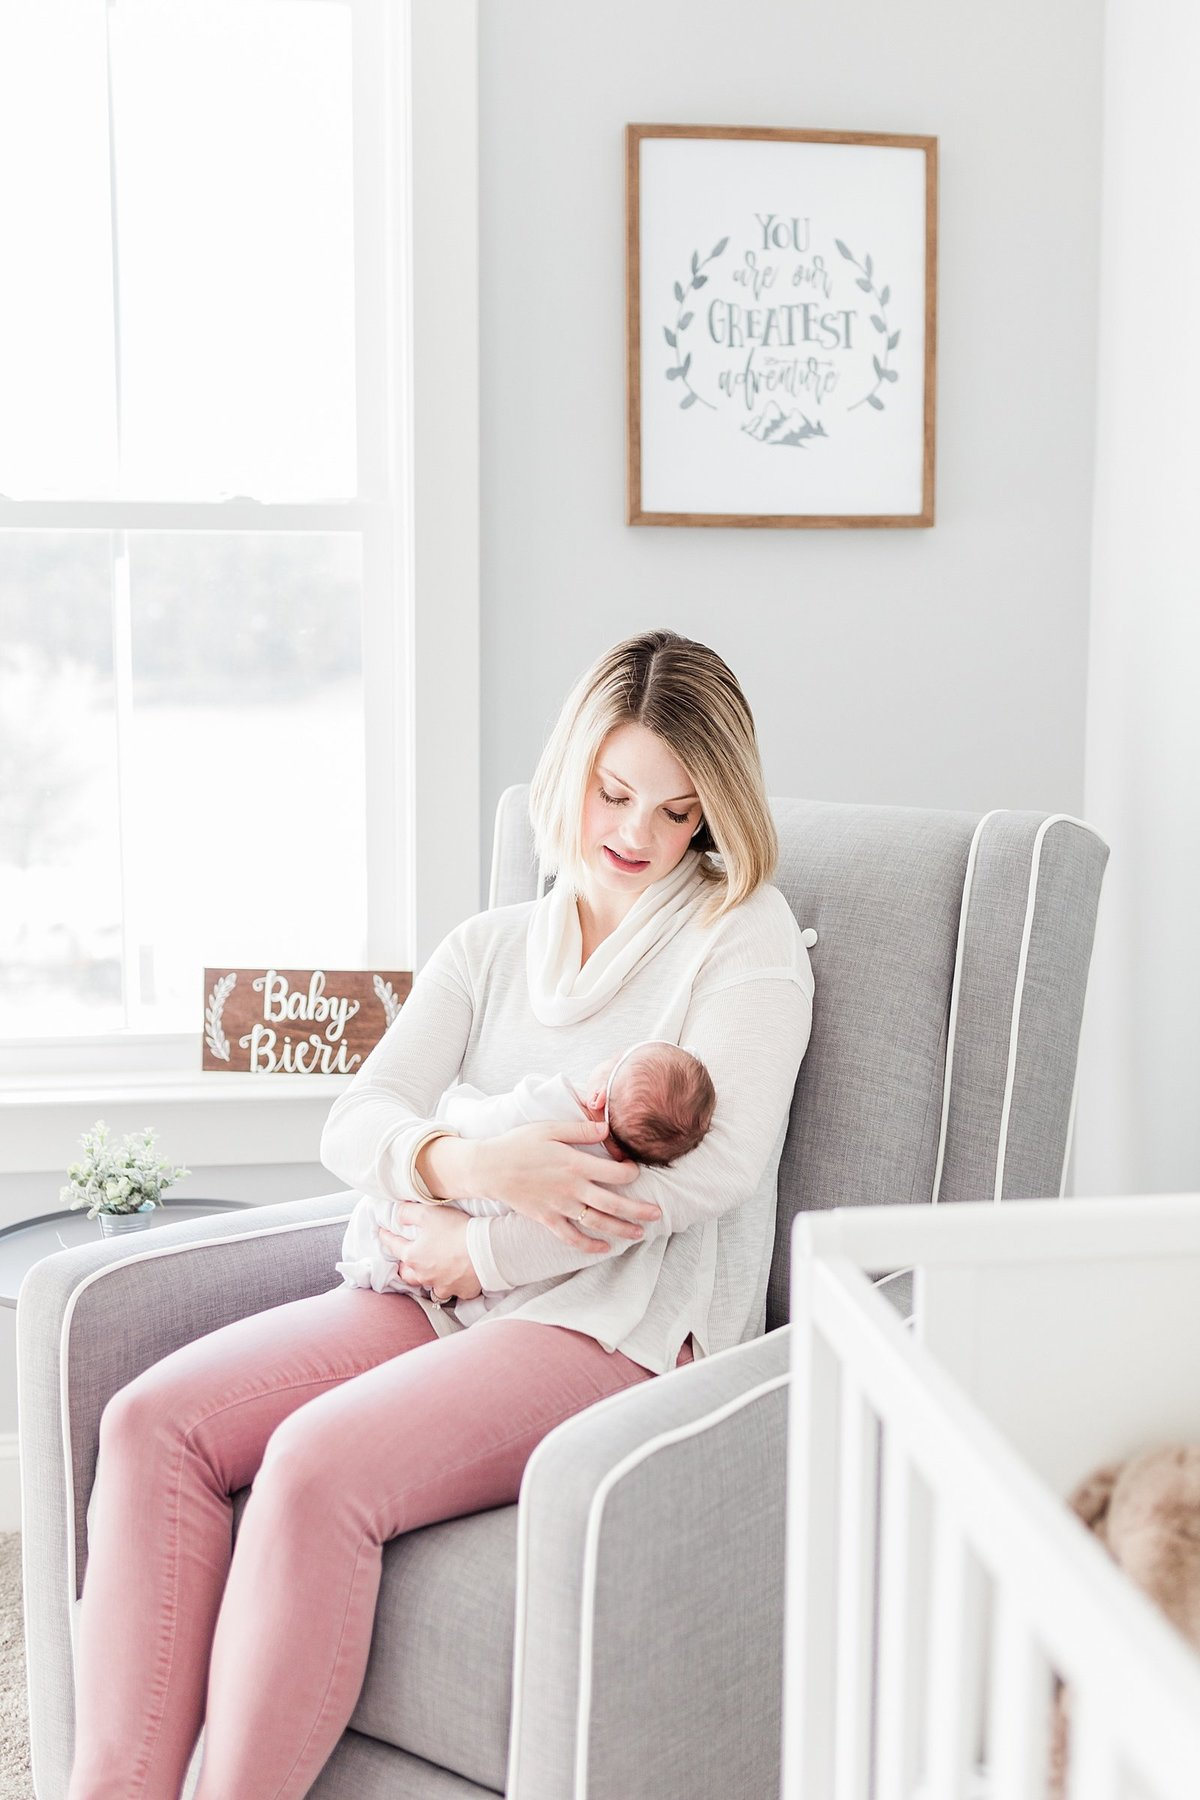 Charleston-Newborn-Photographer-Charleston-Lifestyle-Newborn-Photography-Mount-Pleasant-Newborn-Photographer-Lifestyle-Newborn-Session-9